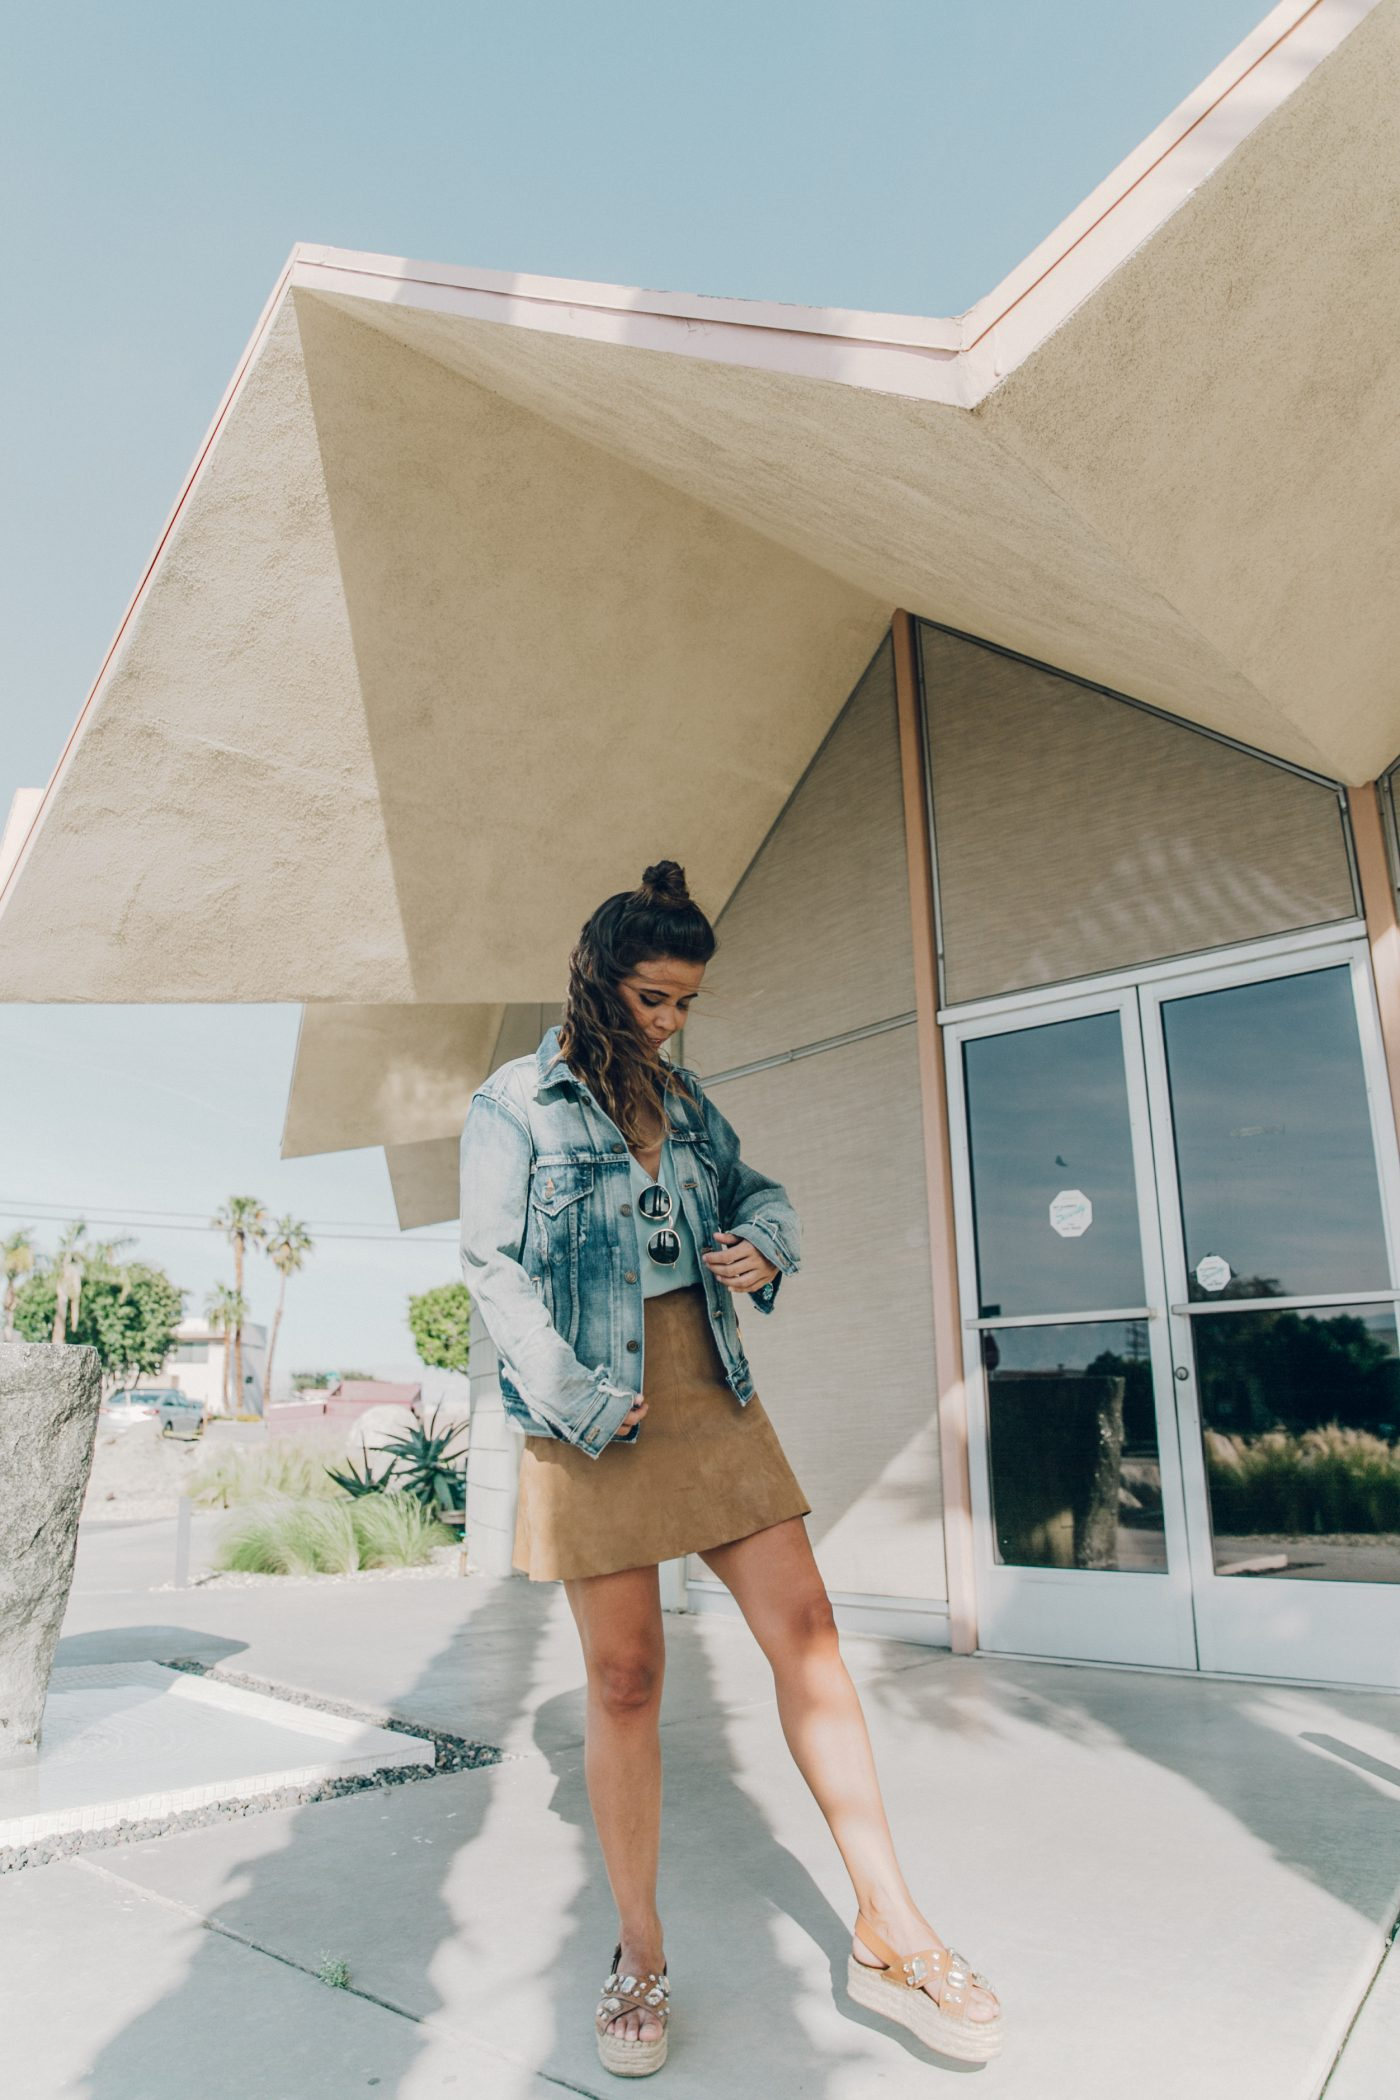 Denim_Jacket-Saint_Laurent-Chloe_Top-Suede_Skirt-Chloe_Hudson_Bag-Espadrilles-Coachella-Palm_Springs-Outfit-Collage_Vintage-9